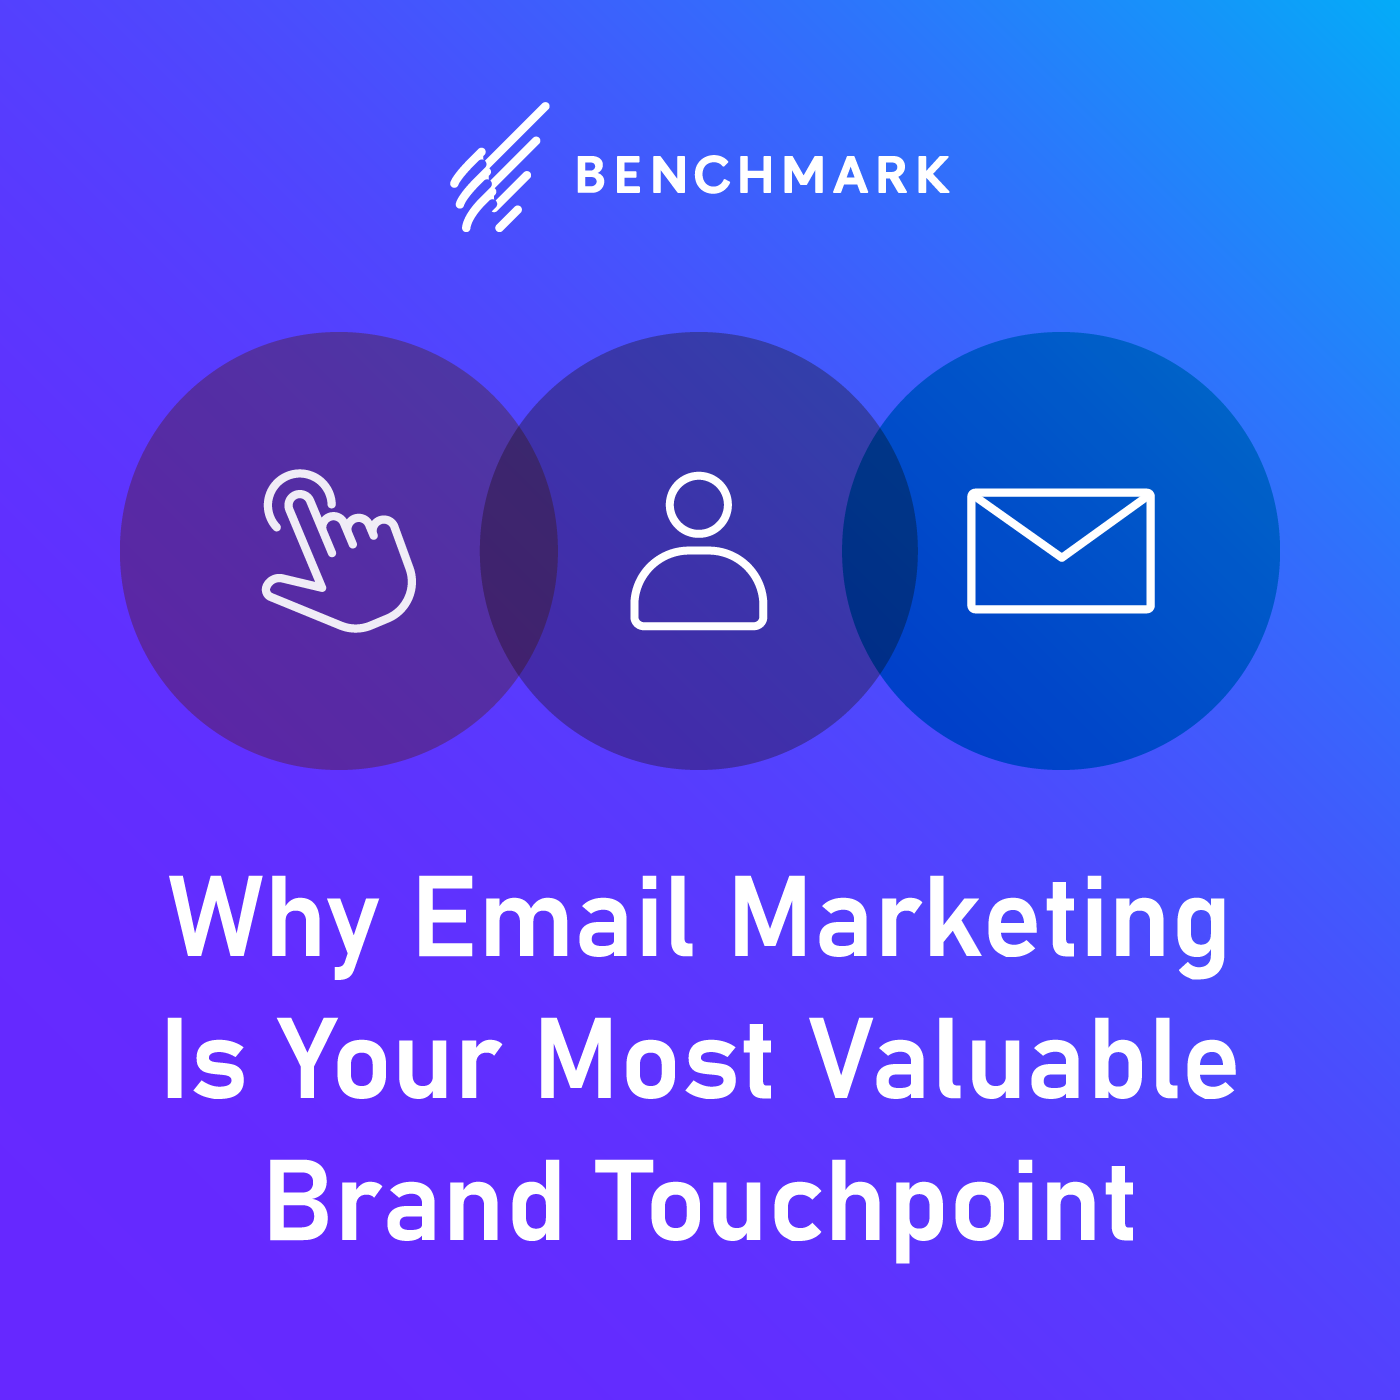 Why Email Marketing Is Your Most Valuable Brand Touchpoint